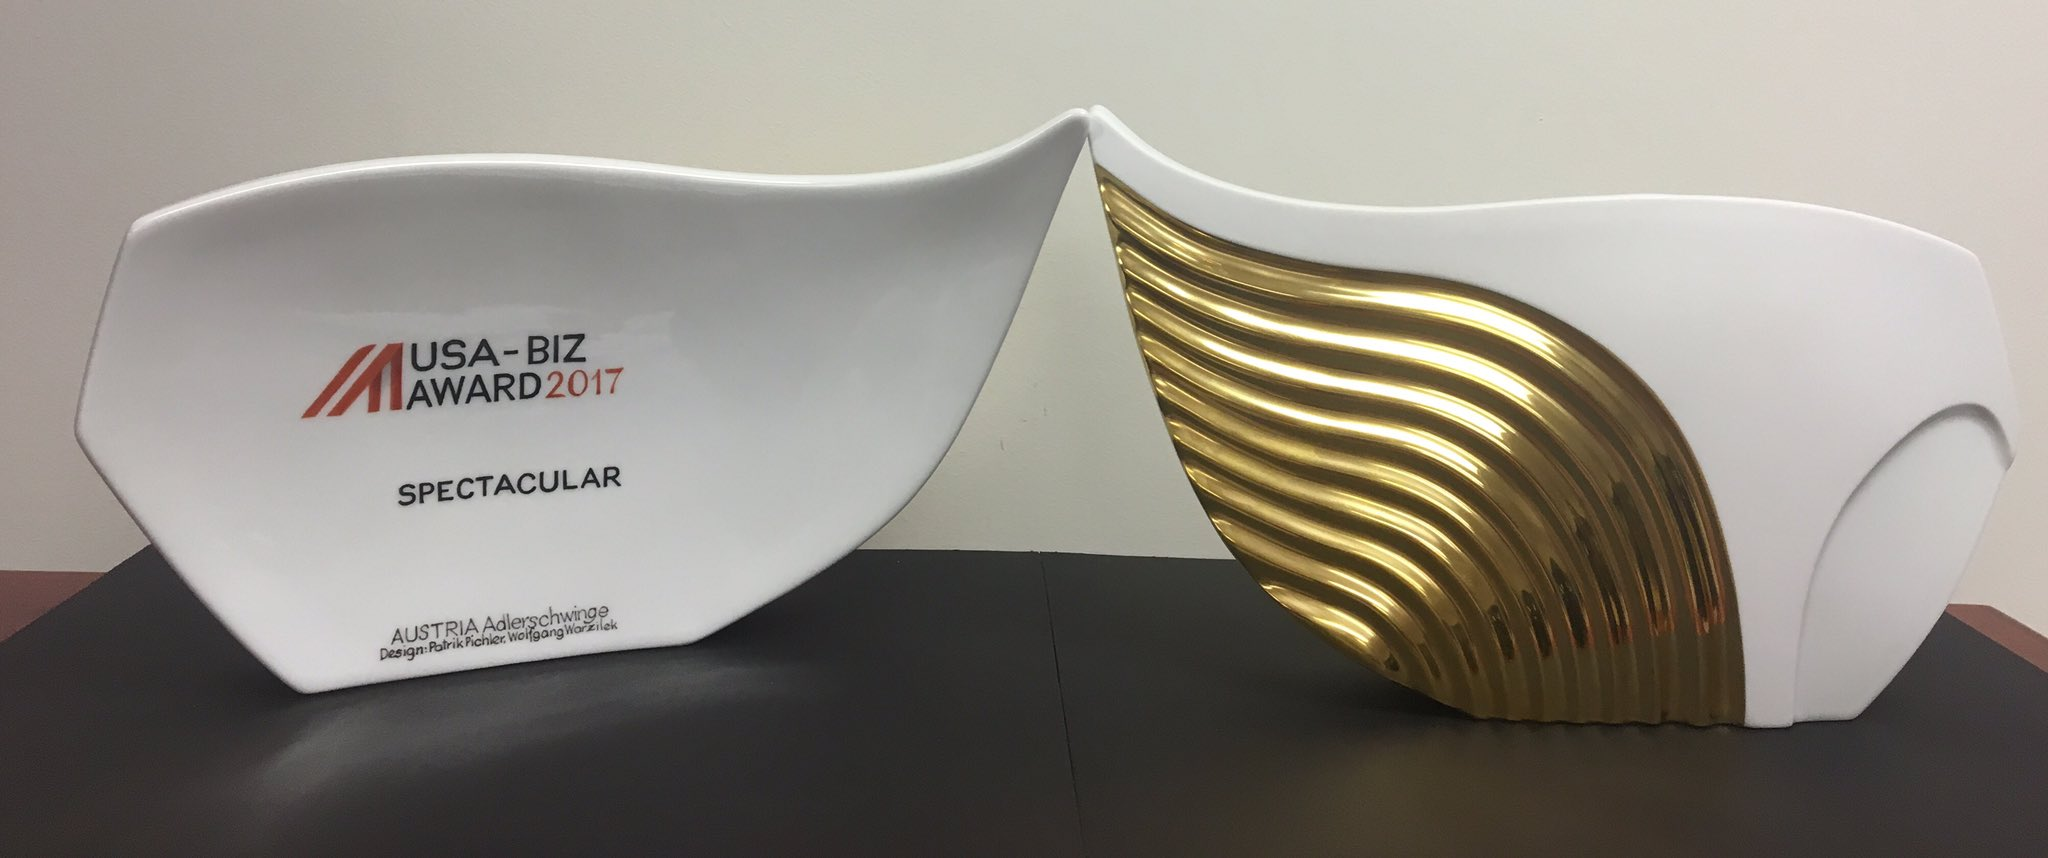 This year's trophies were handcrafted by the Vienna Porcelain Manufactury  Augarten .